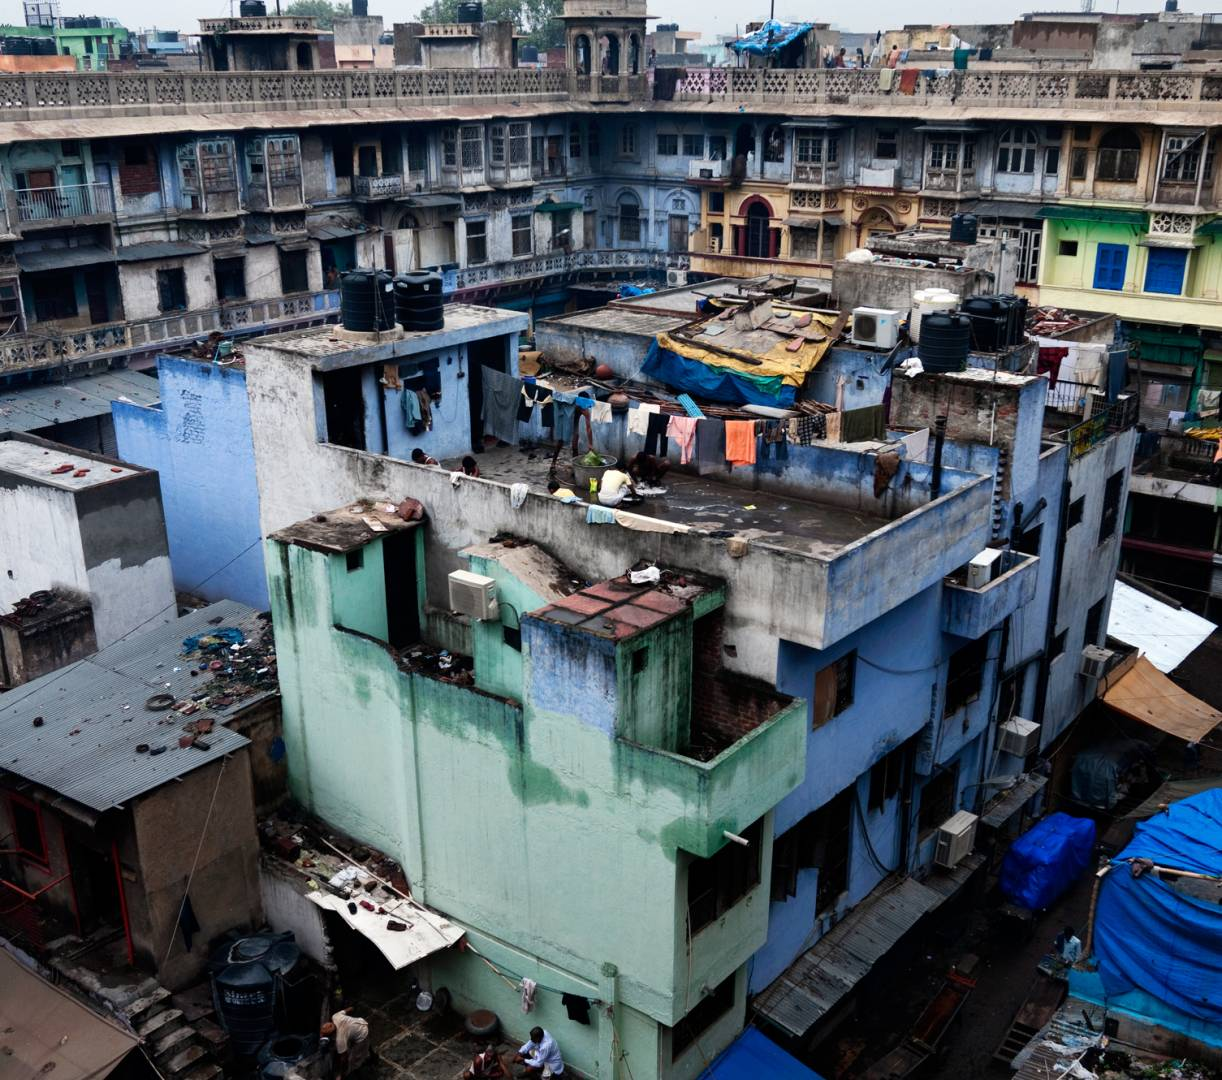 Khari Baoli in Old Delhi, meaning salt water step well, is Asia's largest spice market. This view of the surroundings is from the terrace of Gadodia Market. The day starts with the morning washing for these residents.